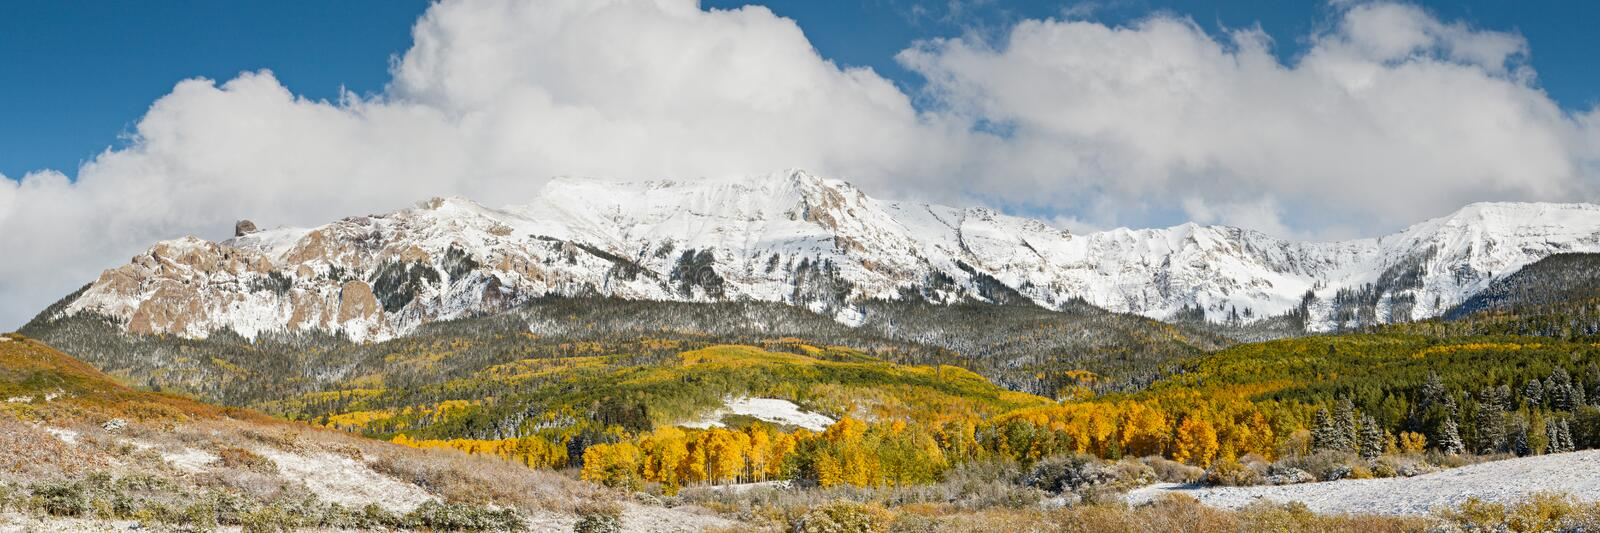 The San Juan Mountains. Beautiful and Colorful Colorado Rocky Mountain Autumn Scenery royalty free stock images